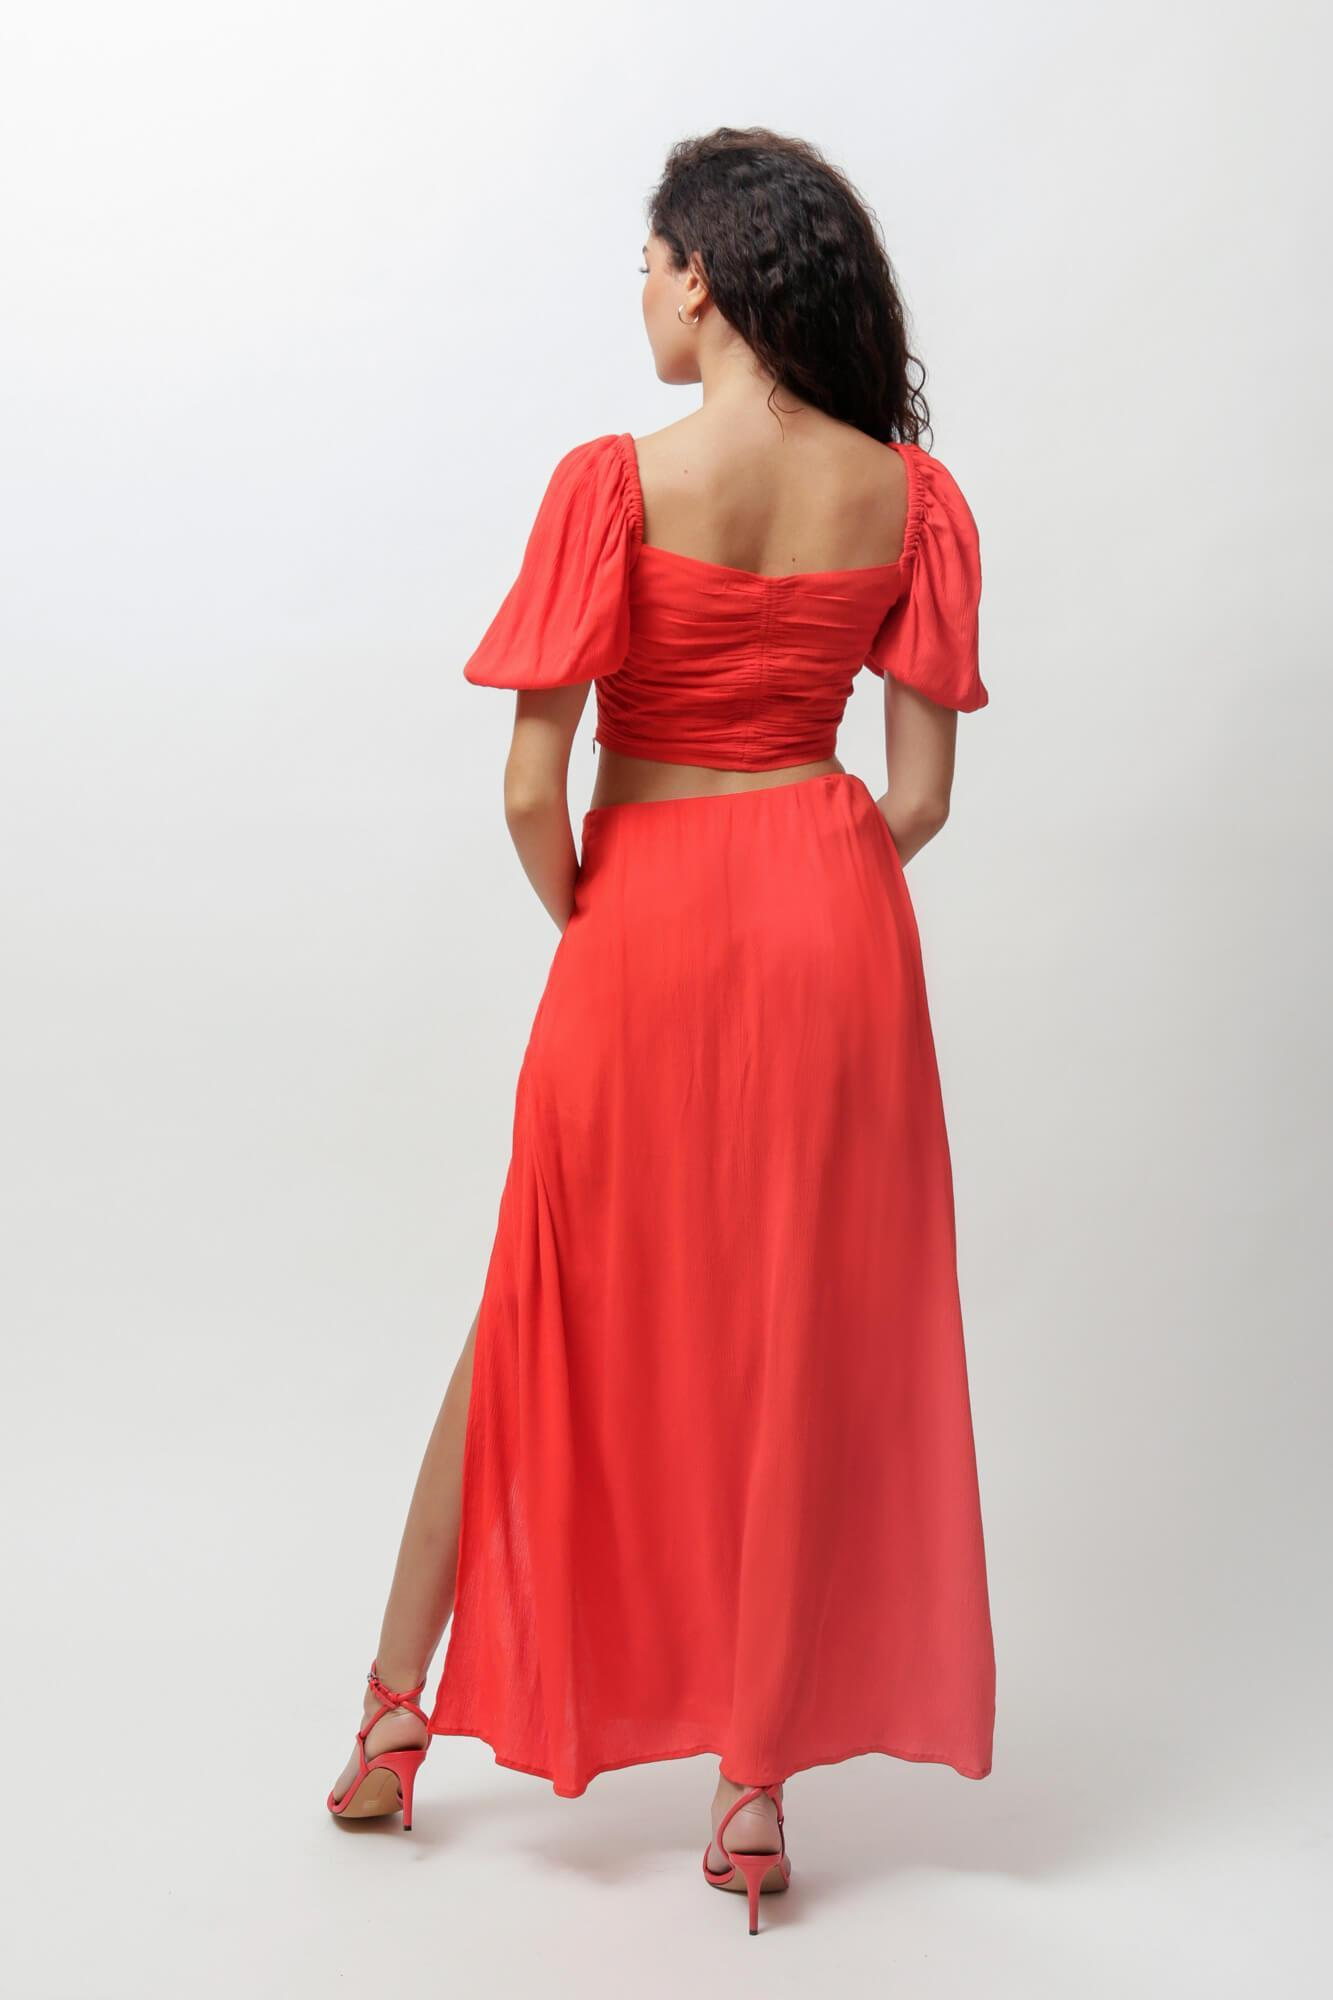 Fiery Red Cindy Crop Top and Skirt Two Piece Set 3